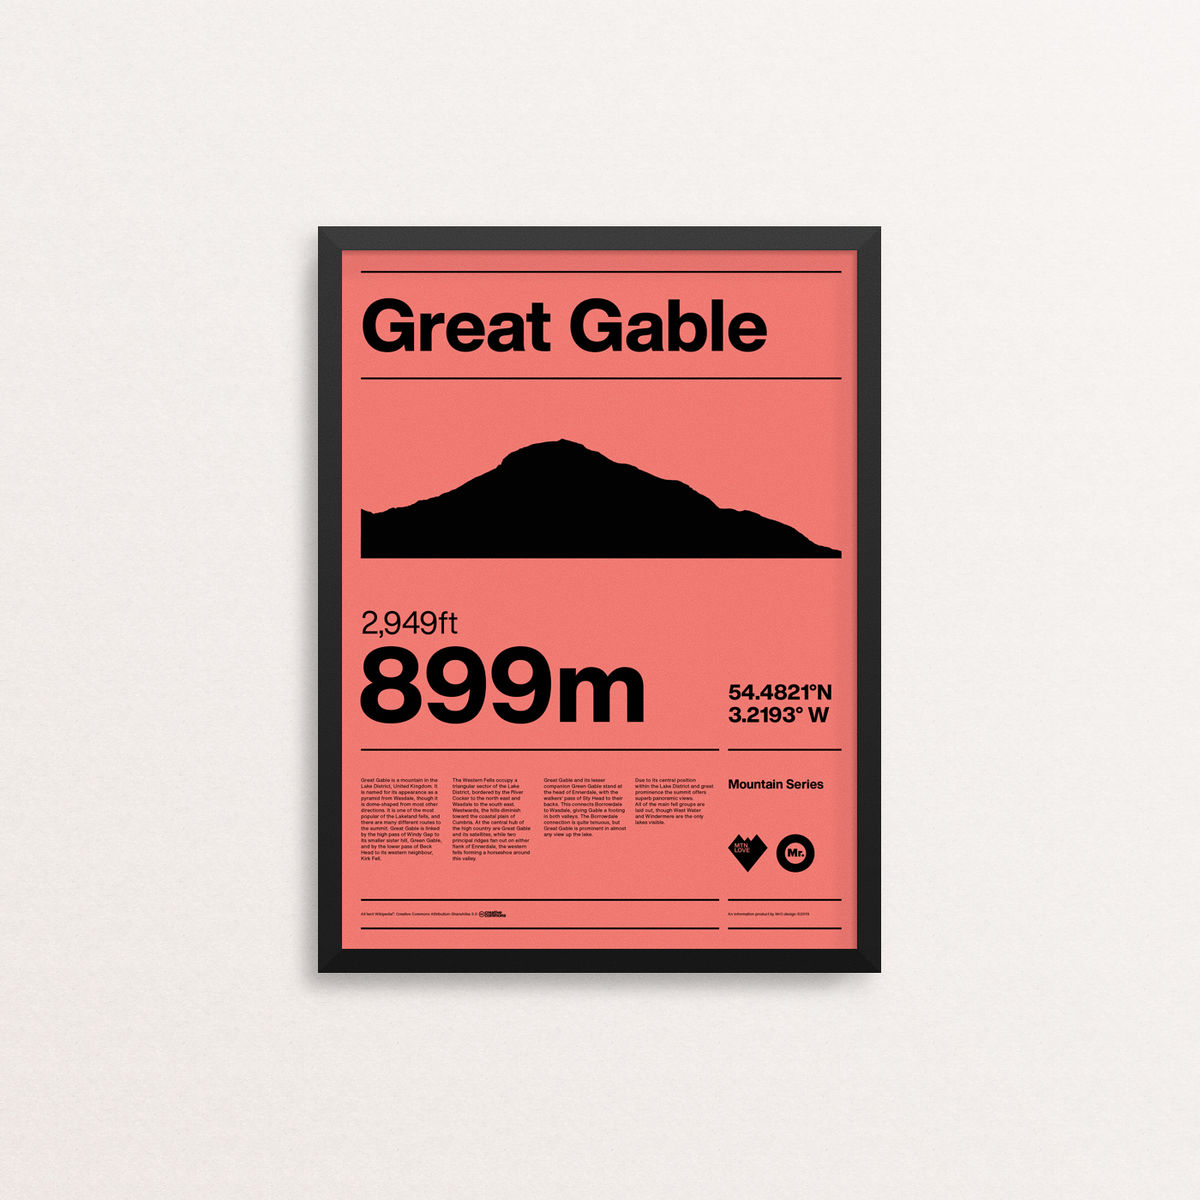 MTN Love - Great Gable - product image